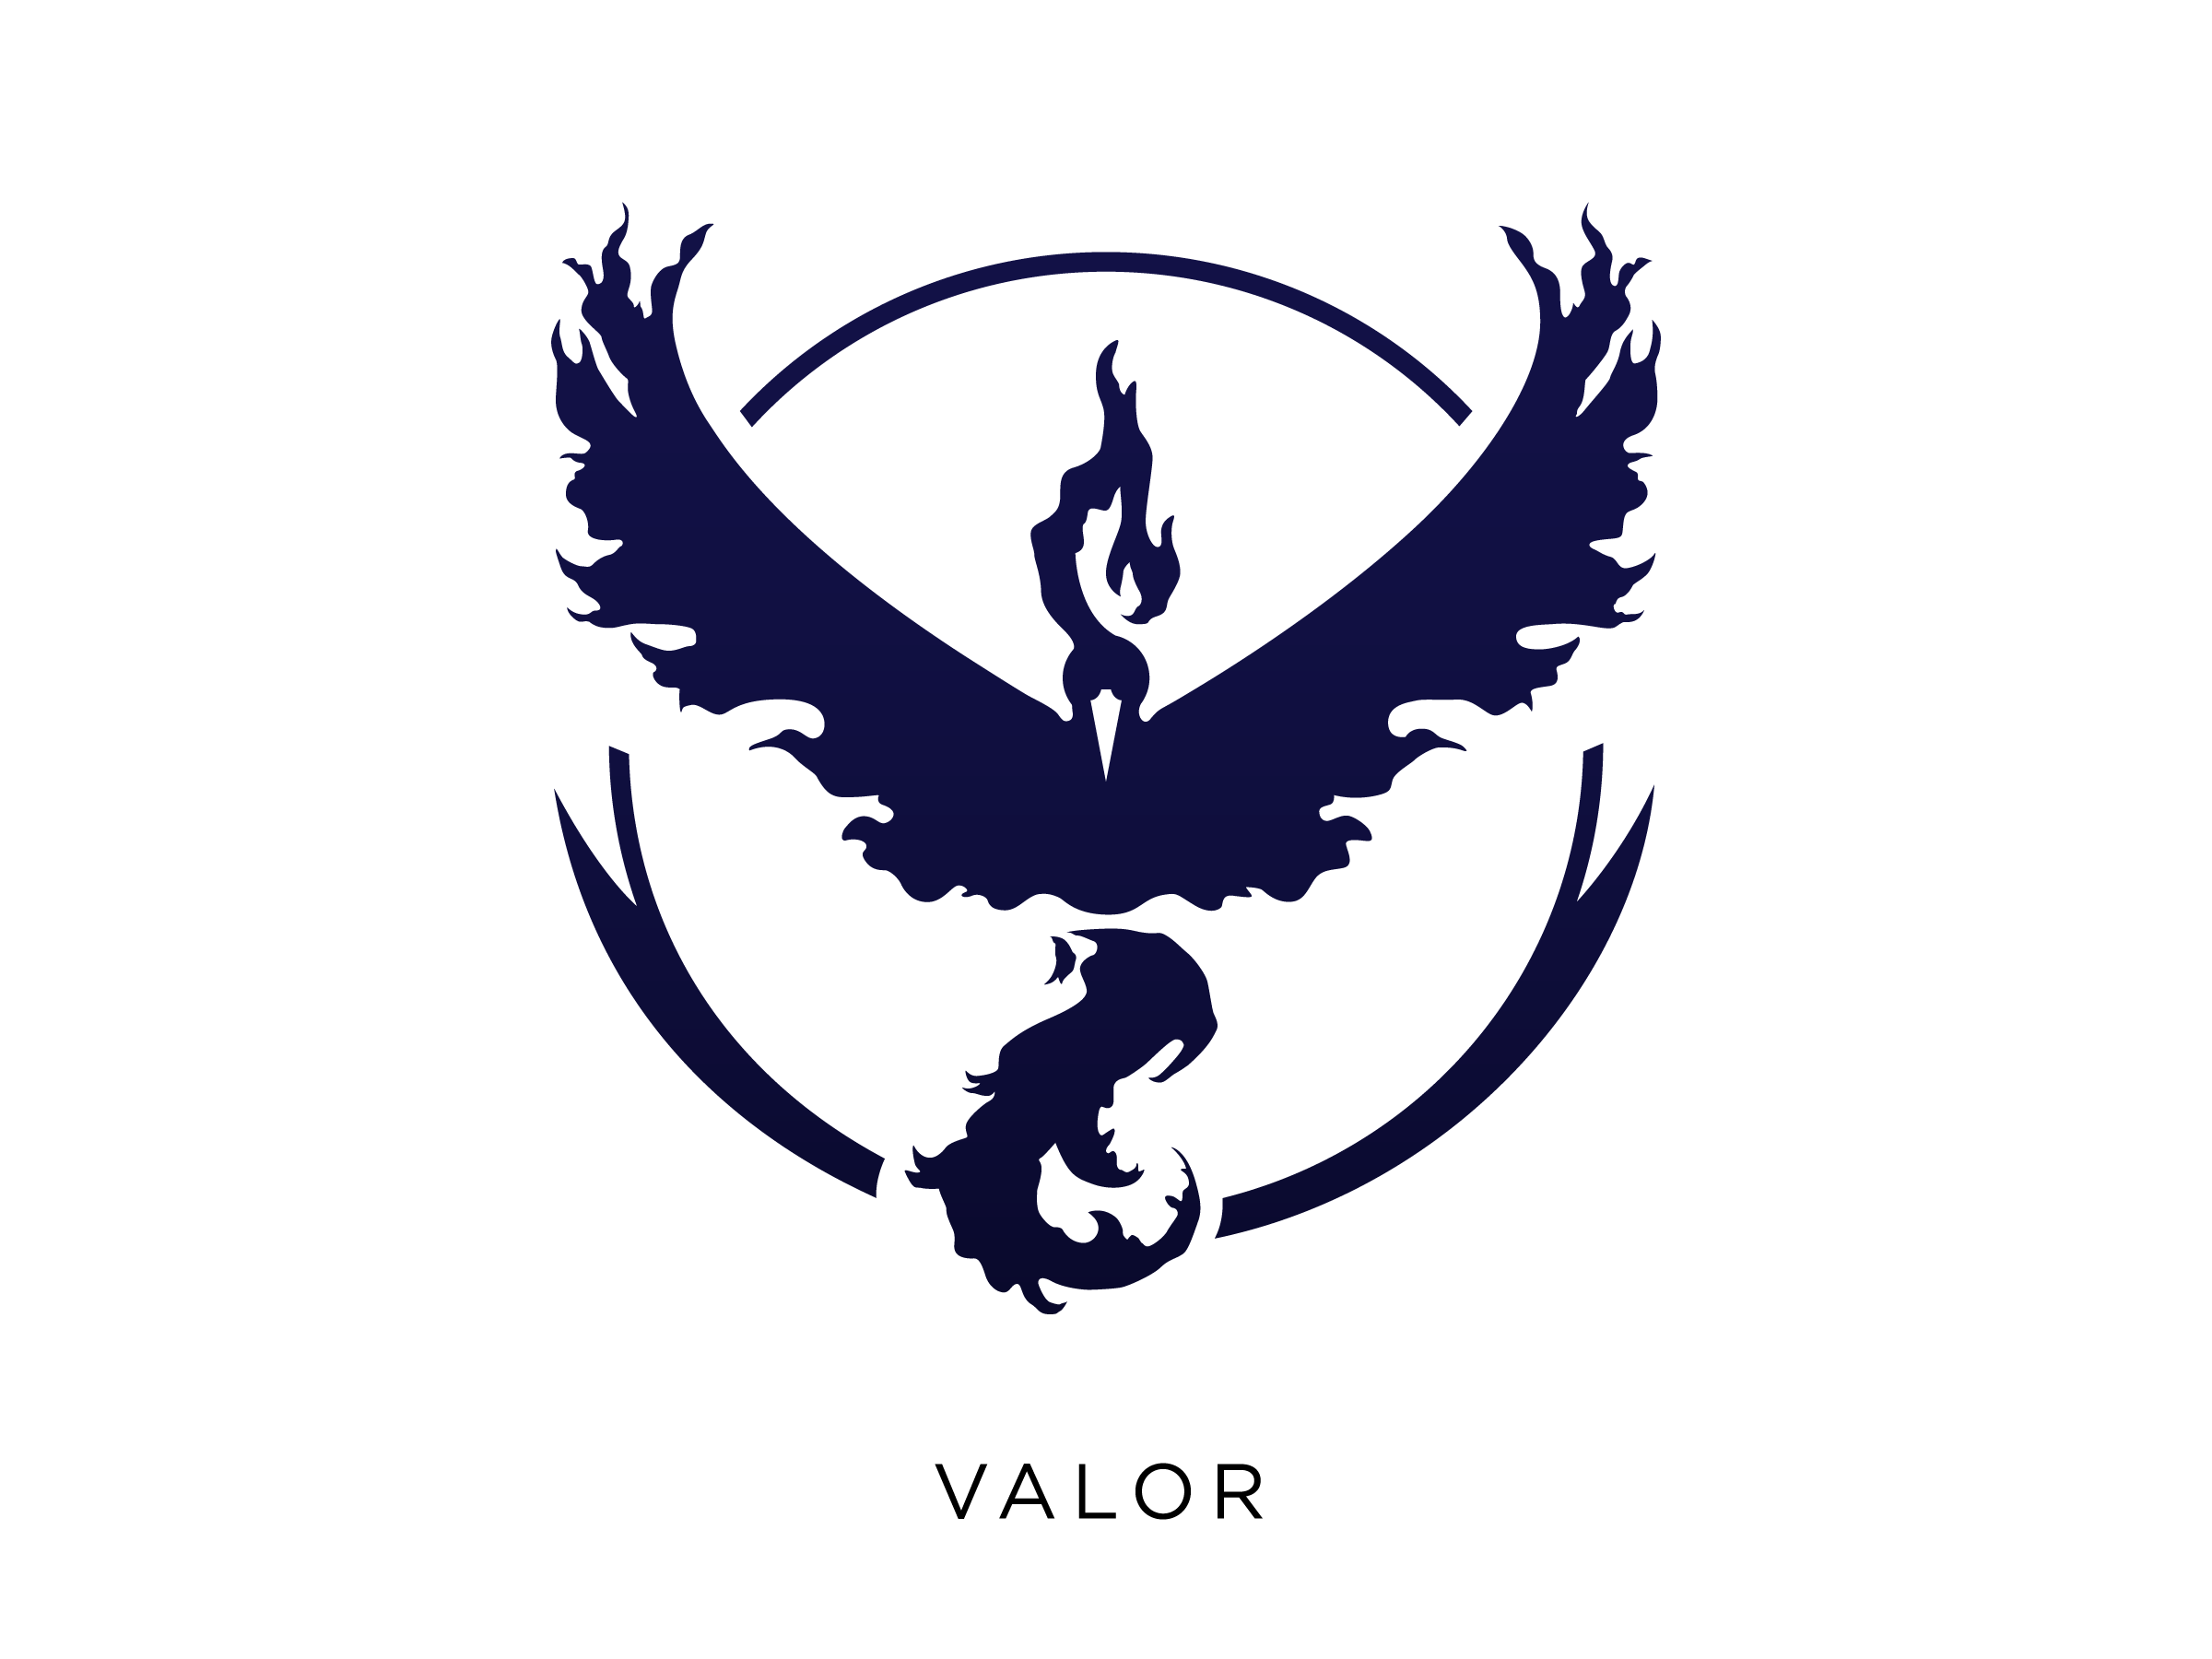 Pokemongo team logos valor - Pokemon Go Logo Vector PNG